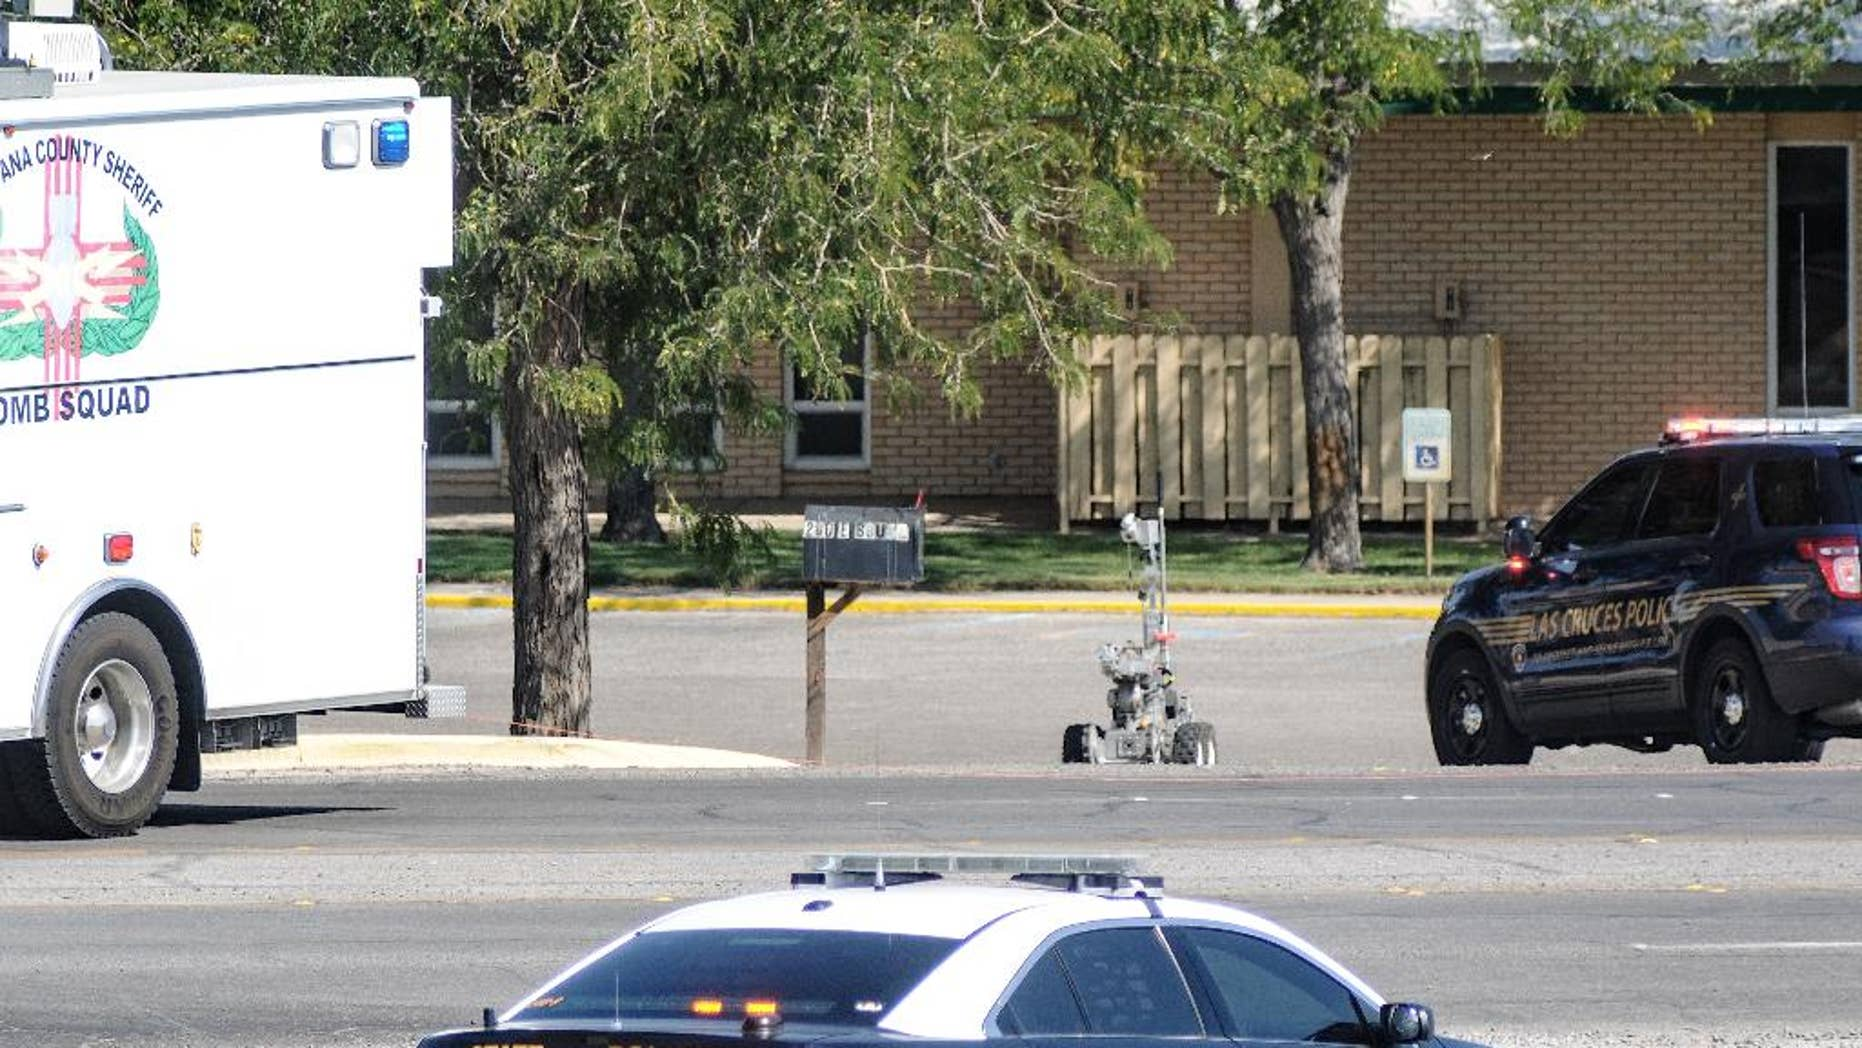 A Dona Ana County bomb squad robot is deployed to examine a suspicious package at the First Presbyterian Church, Friday, Aug. 14, 2015, in Las Cruces, N.M. The device was found Friday morning by a groundskeeper at the church. Police haven't released any details about the device. The incident comes just weeks after the detonation of explosive devices outside two other Las Cruces churches. (Robin Zielinski/The Las Cruces Sun-News via AP) MANDATORY CREDIT